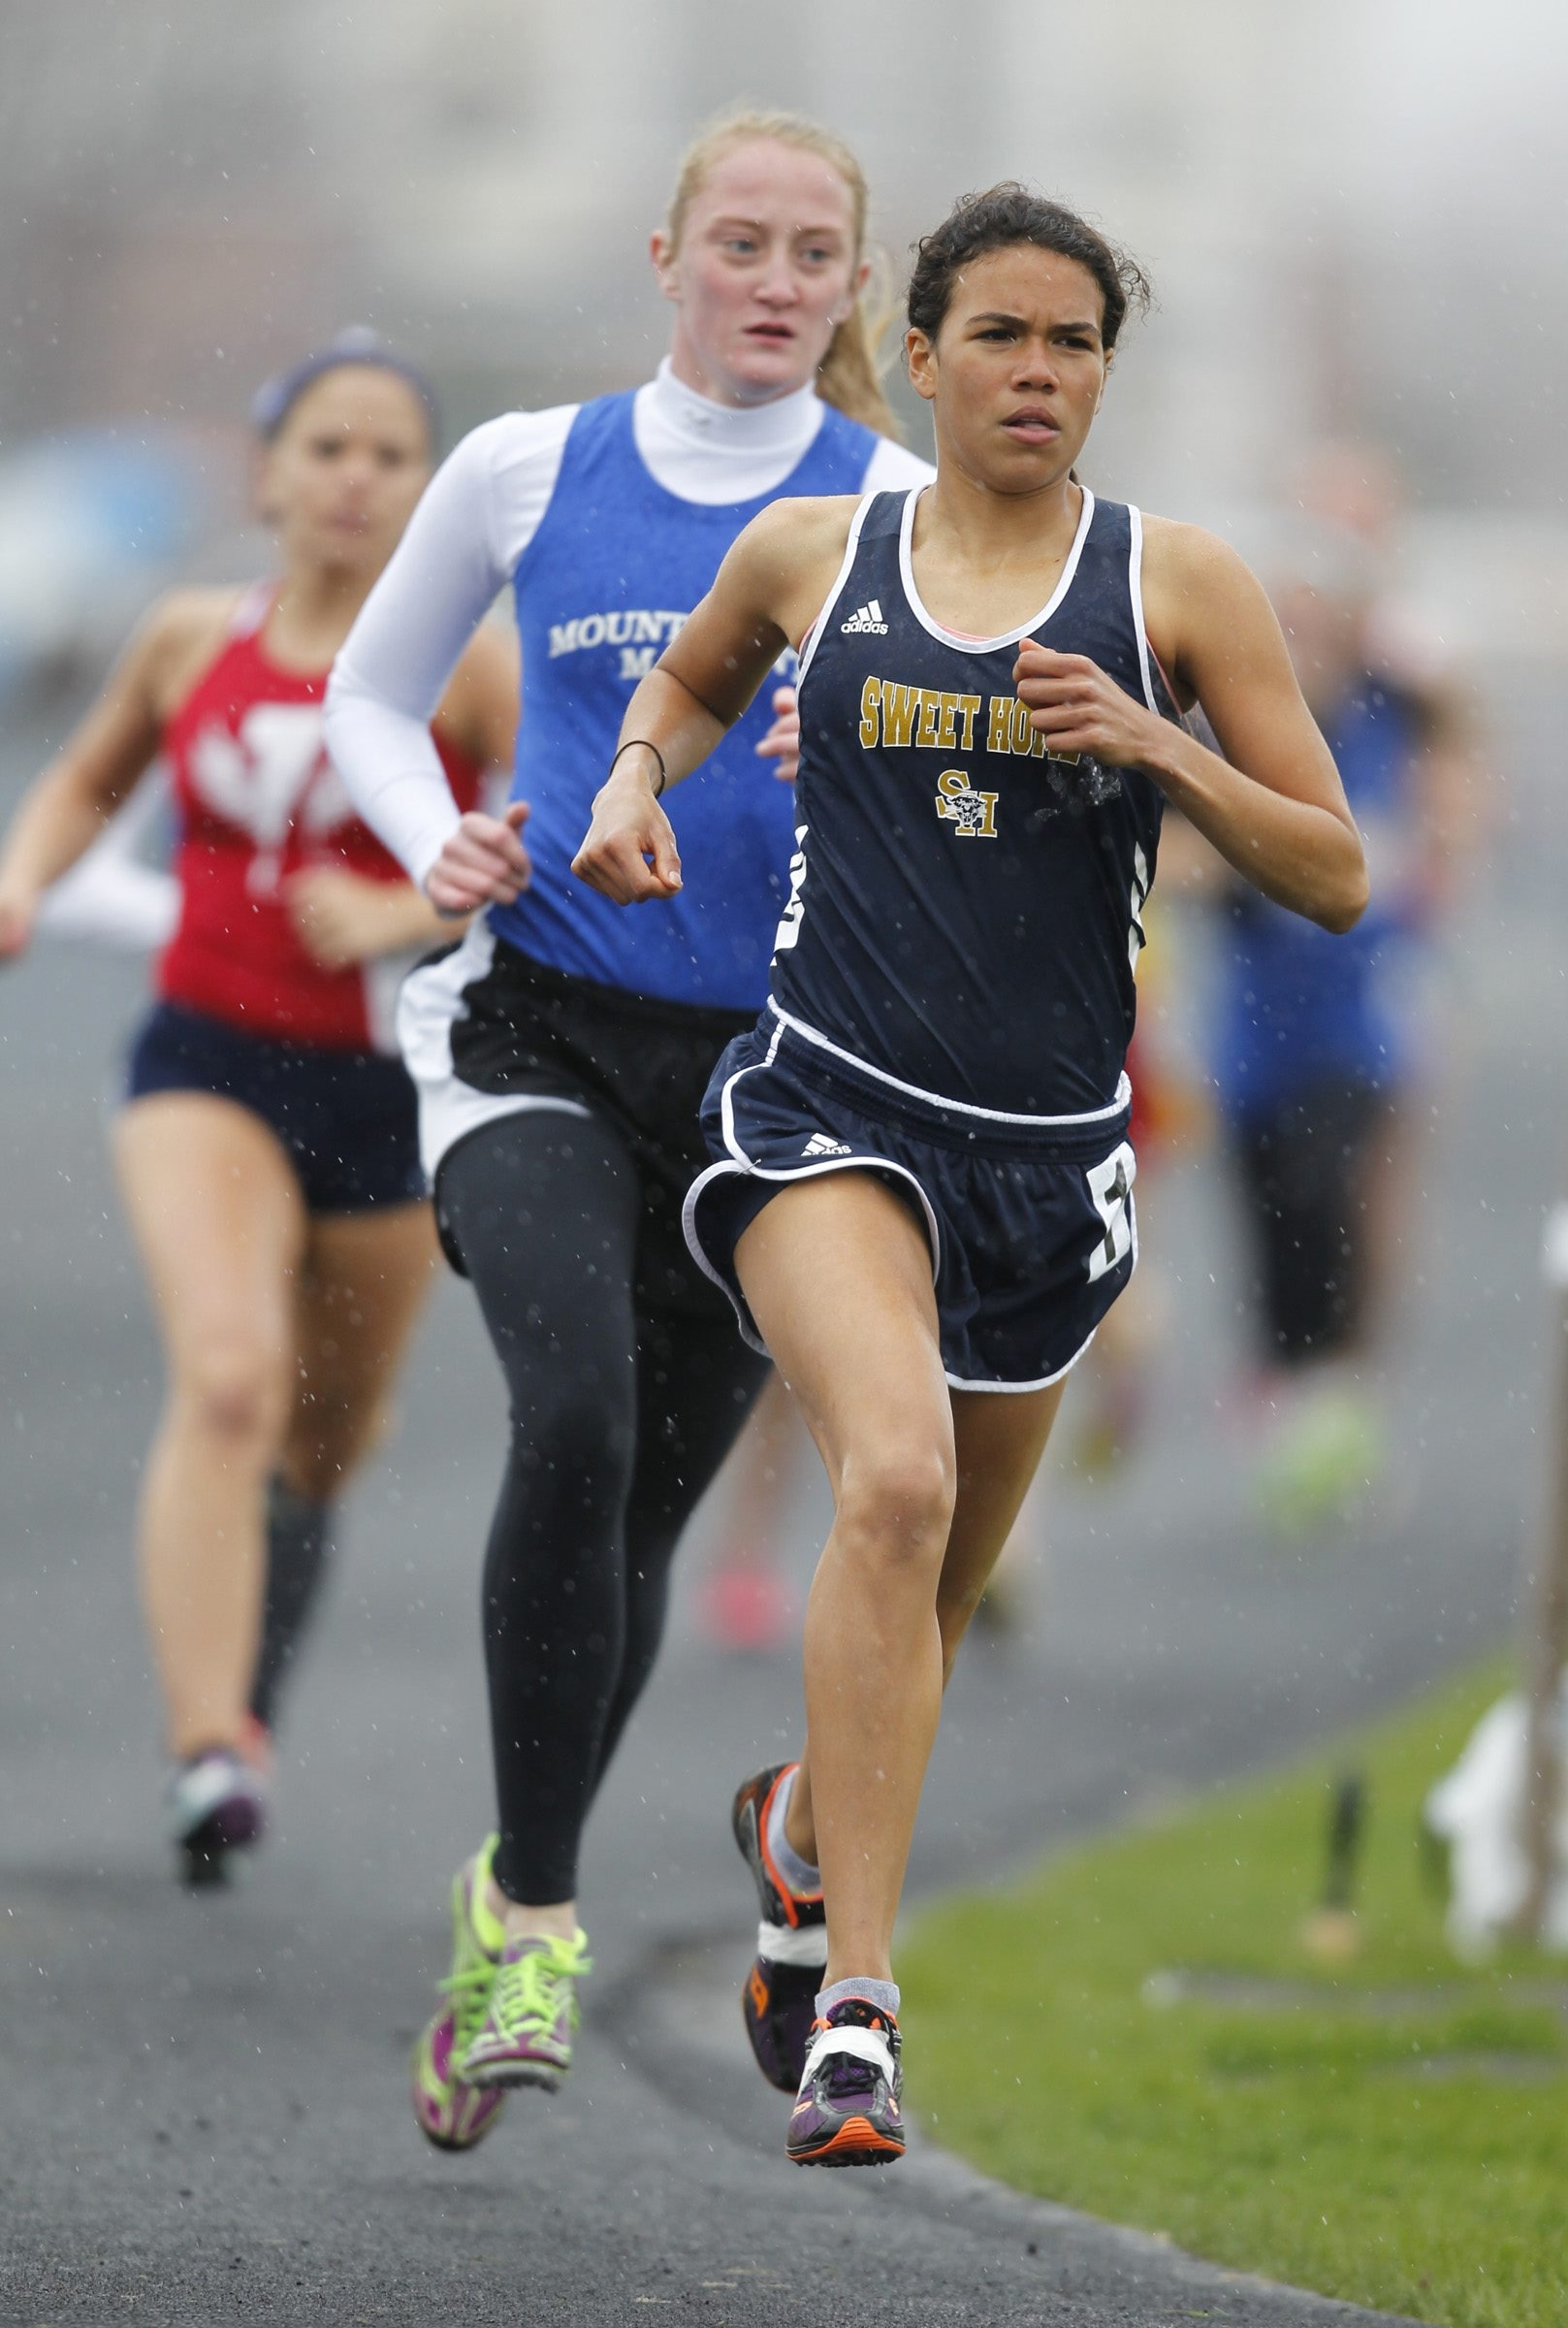 Ally Ortega from Sweet Home wins the girls 3,000 meter run during the ADPRO Sports Panther Invitational  meet at Sweet Home on Saturday.